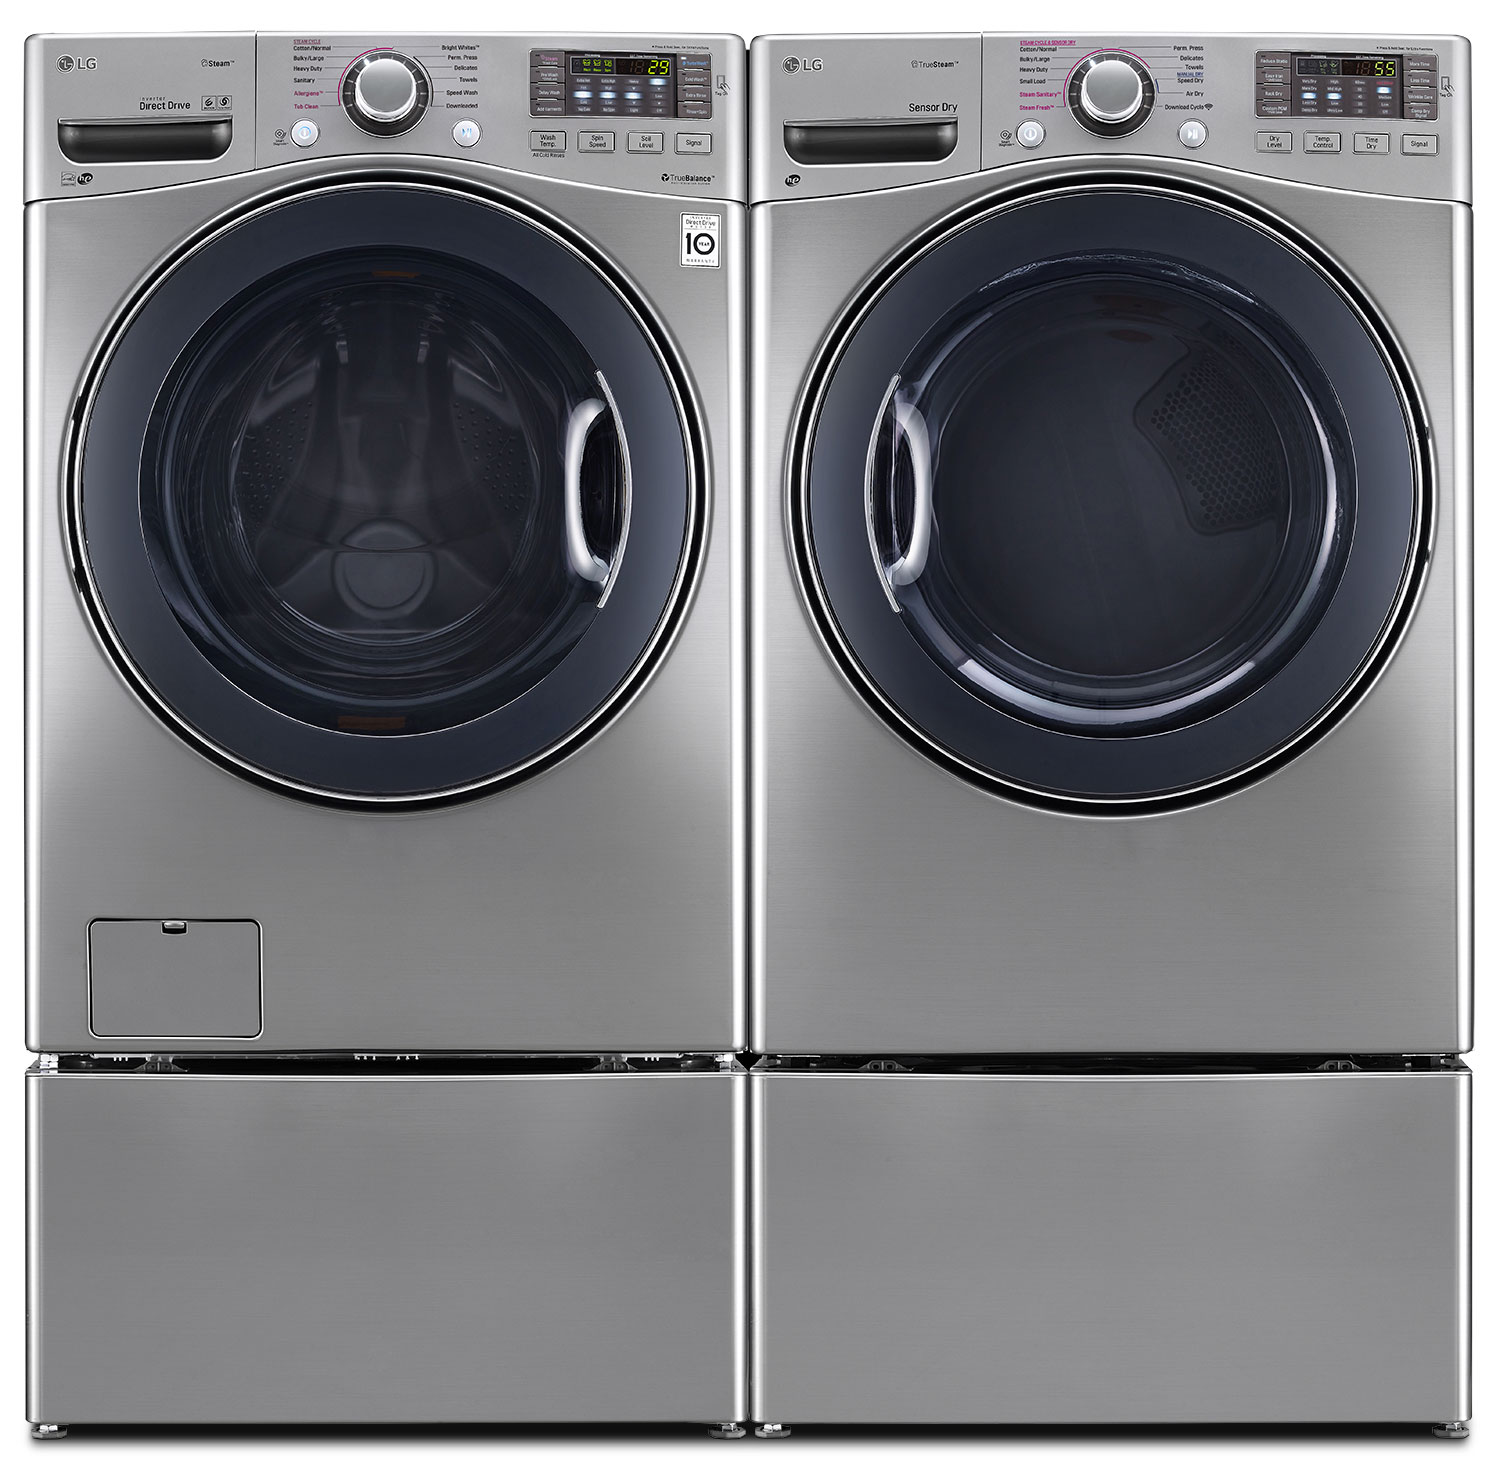 LG TWIN Wash™ 5.2 Cu. Ft. Washer, 7.4 Cu. Ft. Gas Dryer, Pedestal Washer and Storage Pedestal